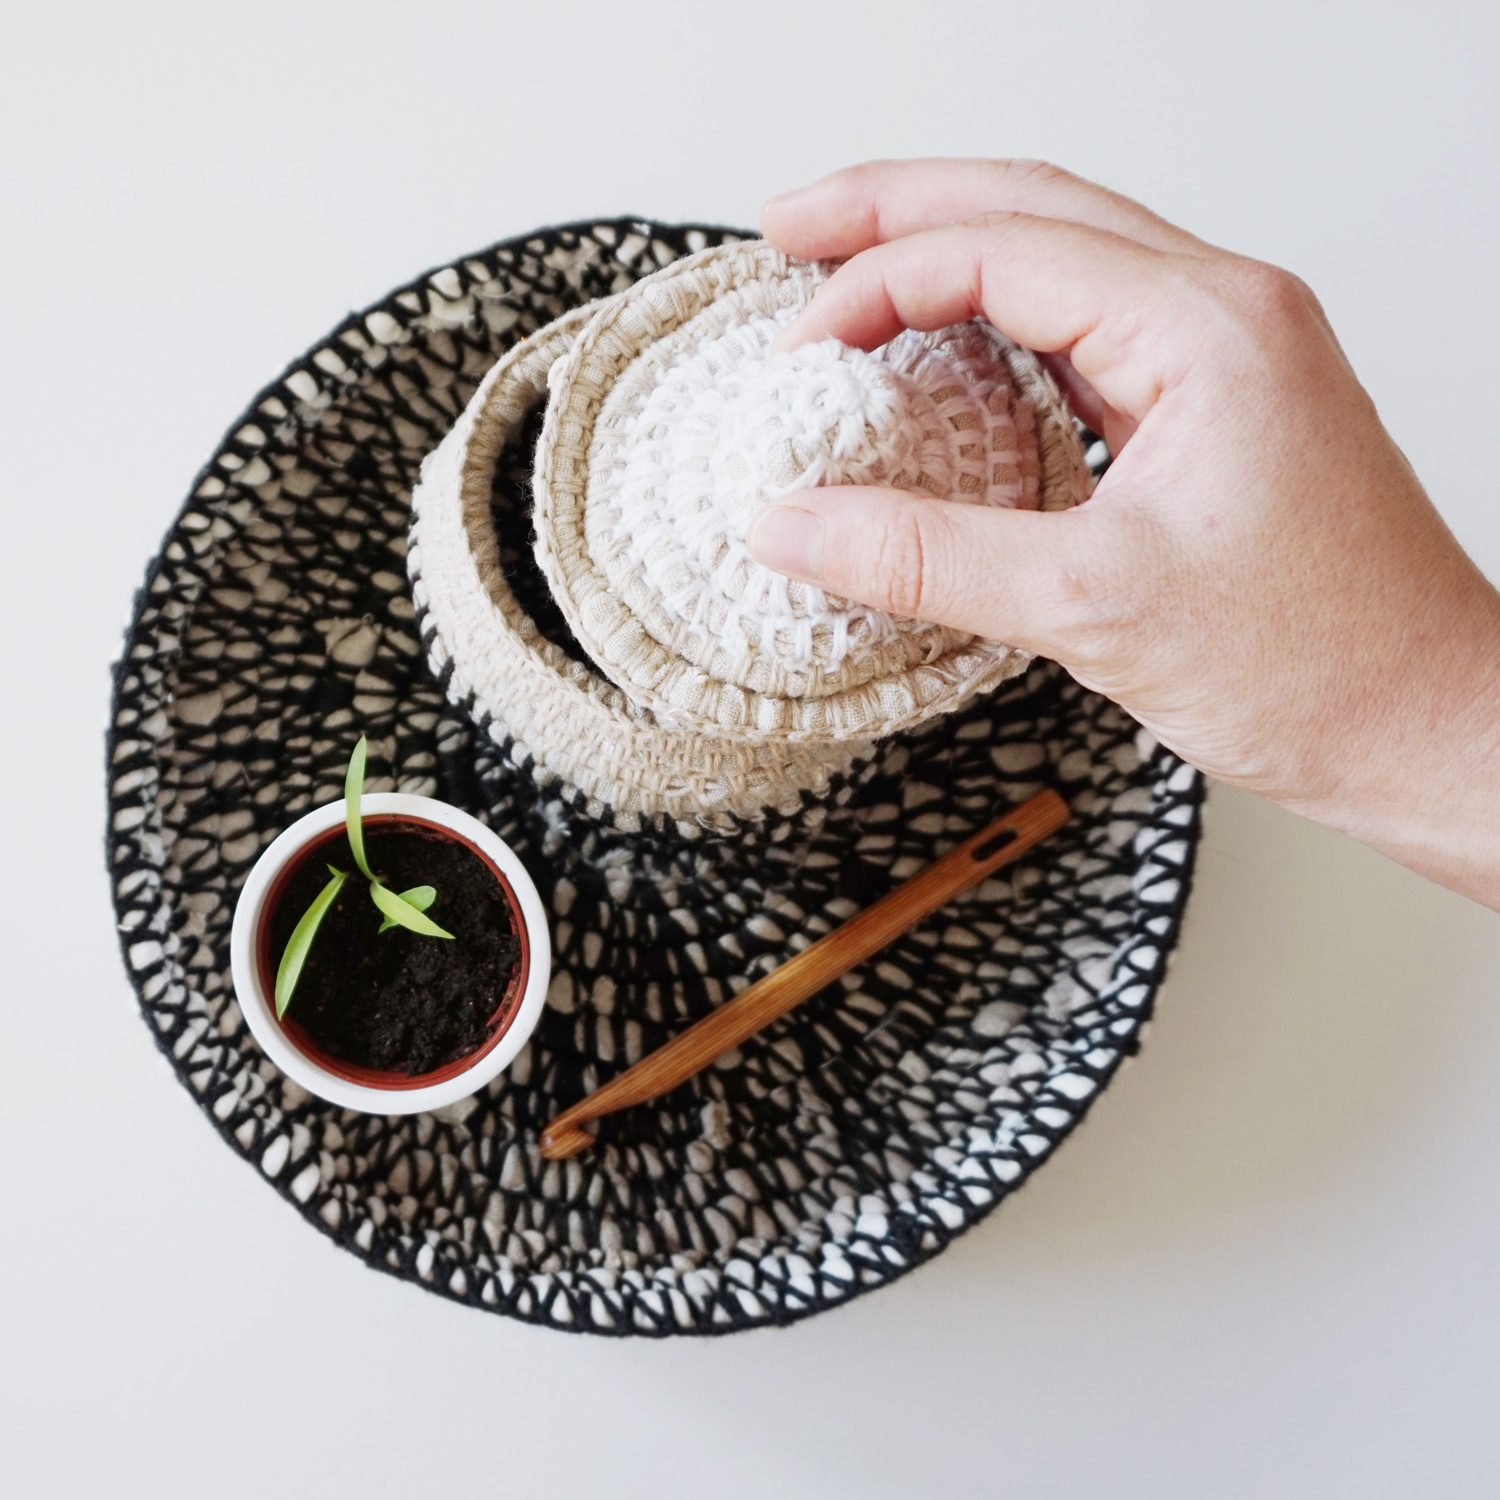 An unusual decorative plate, crocheted from fabric scraps and recycled yarn. A perfect base to style your favorite decor with.